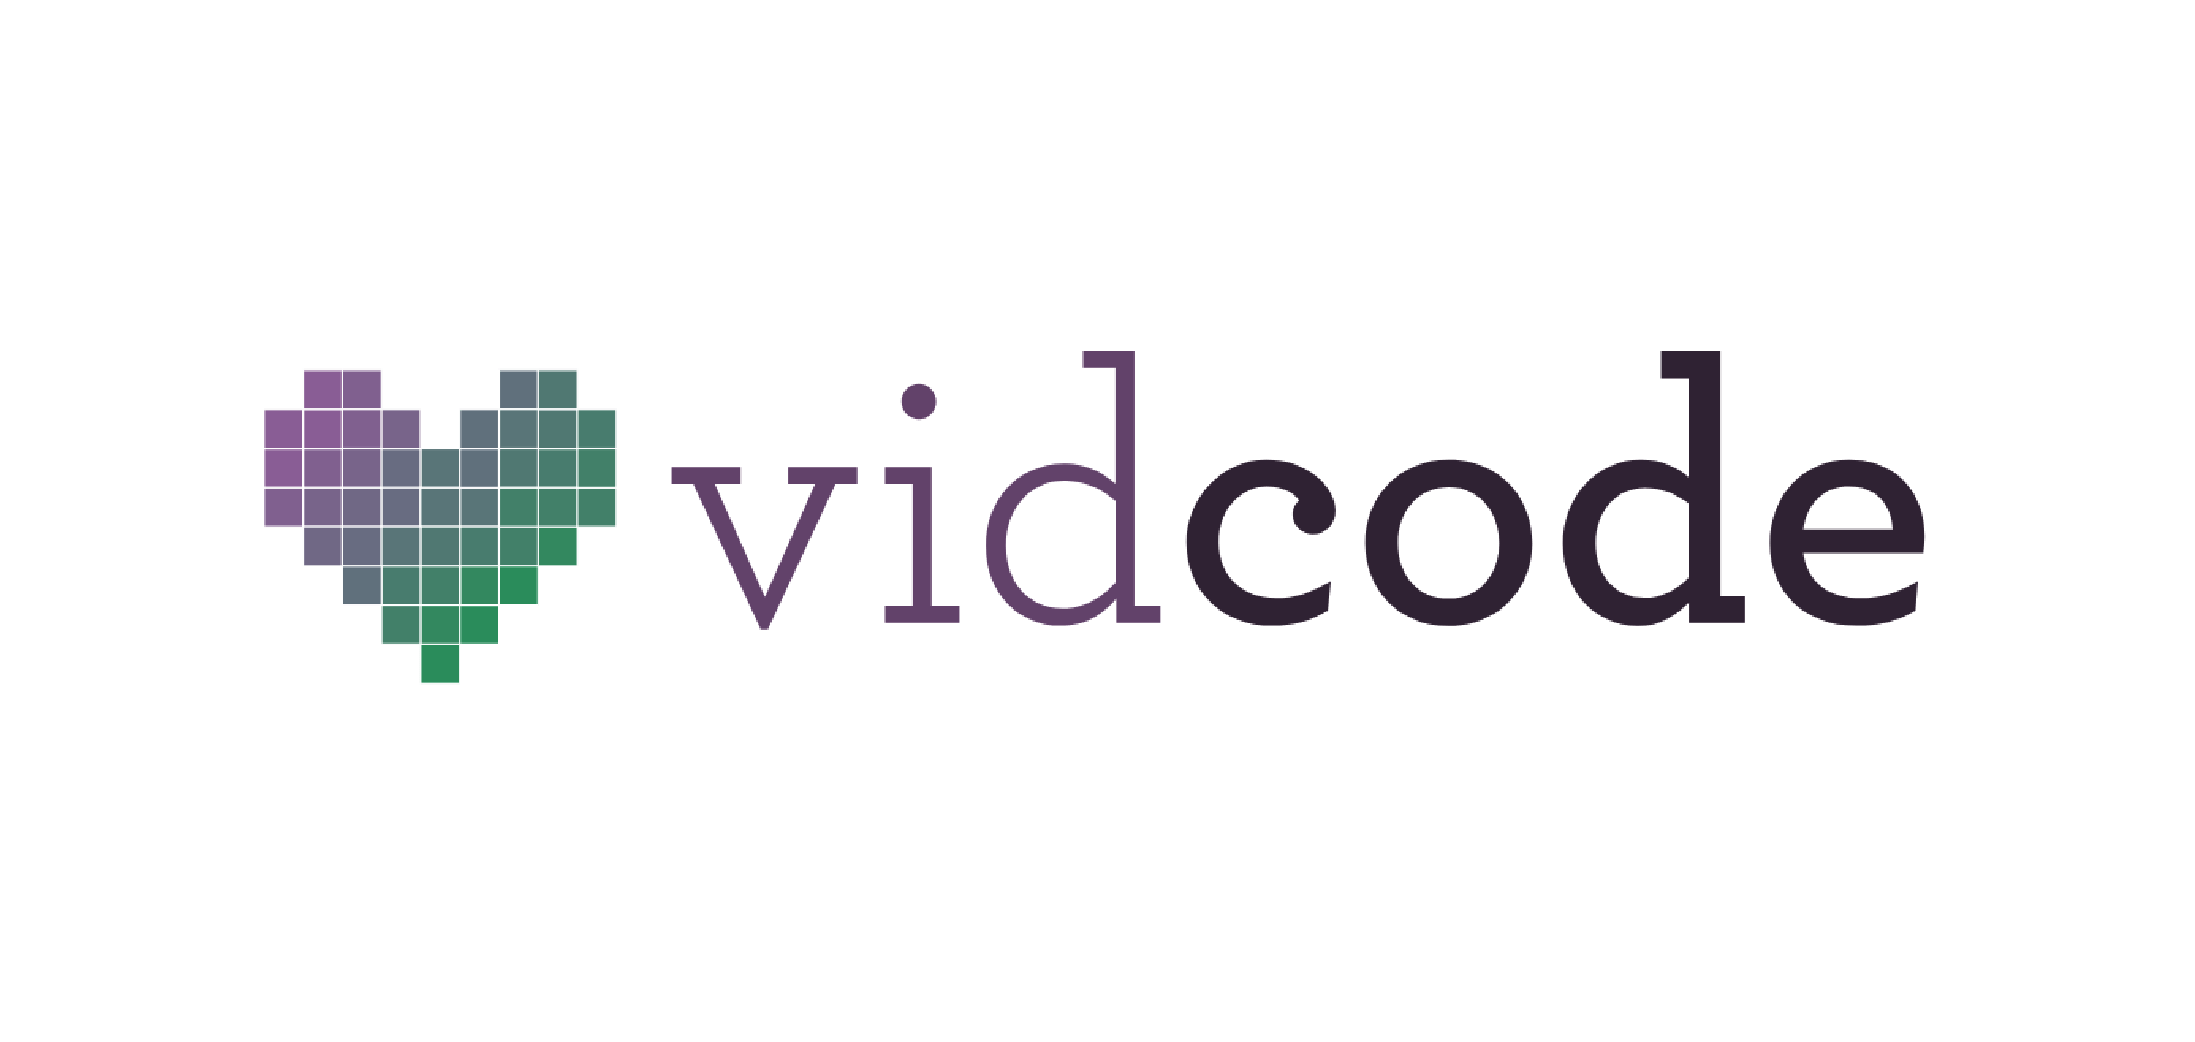 Vidcode Offering Free Coding Platform & Science Curriculum to Support Educators and Students During School Closures